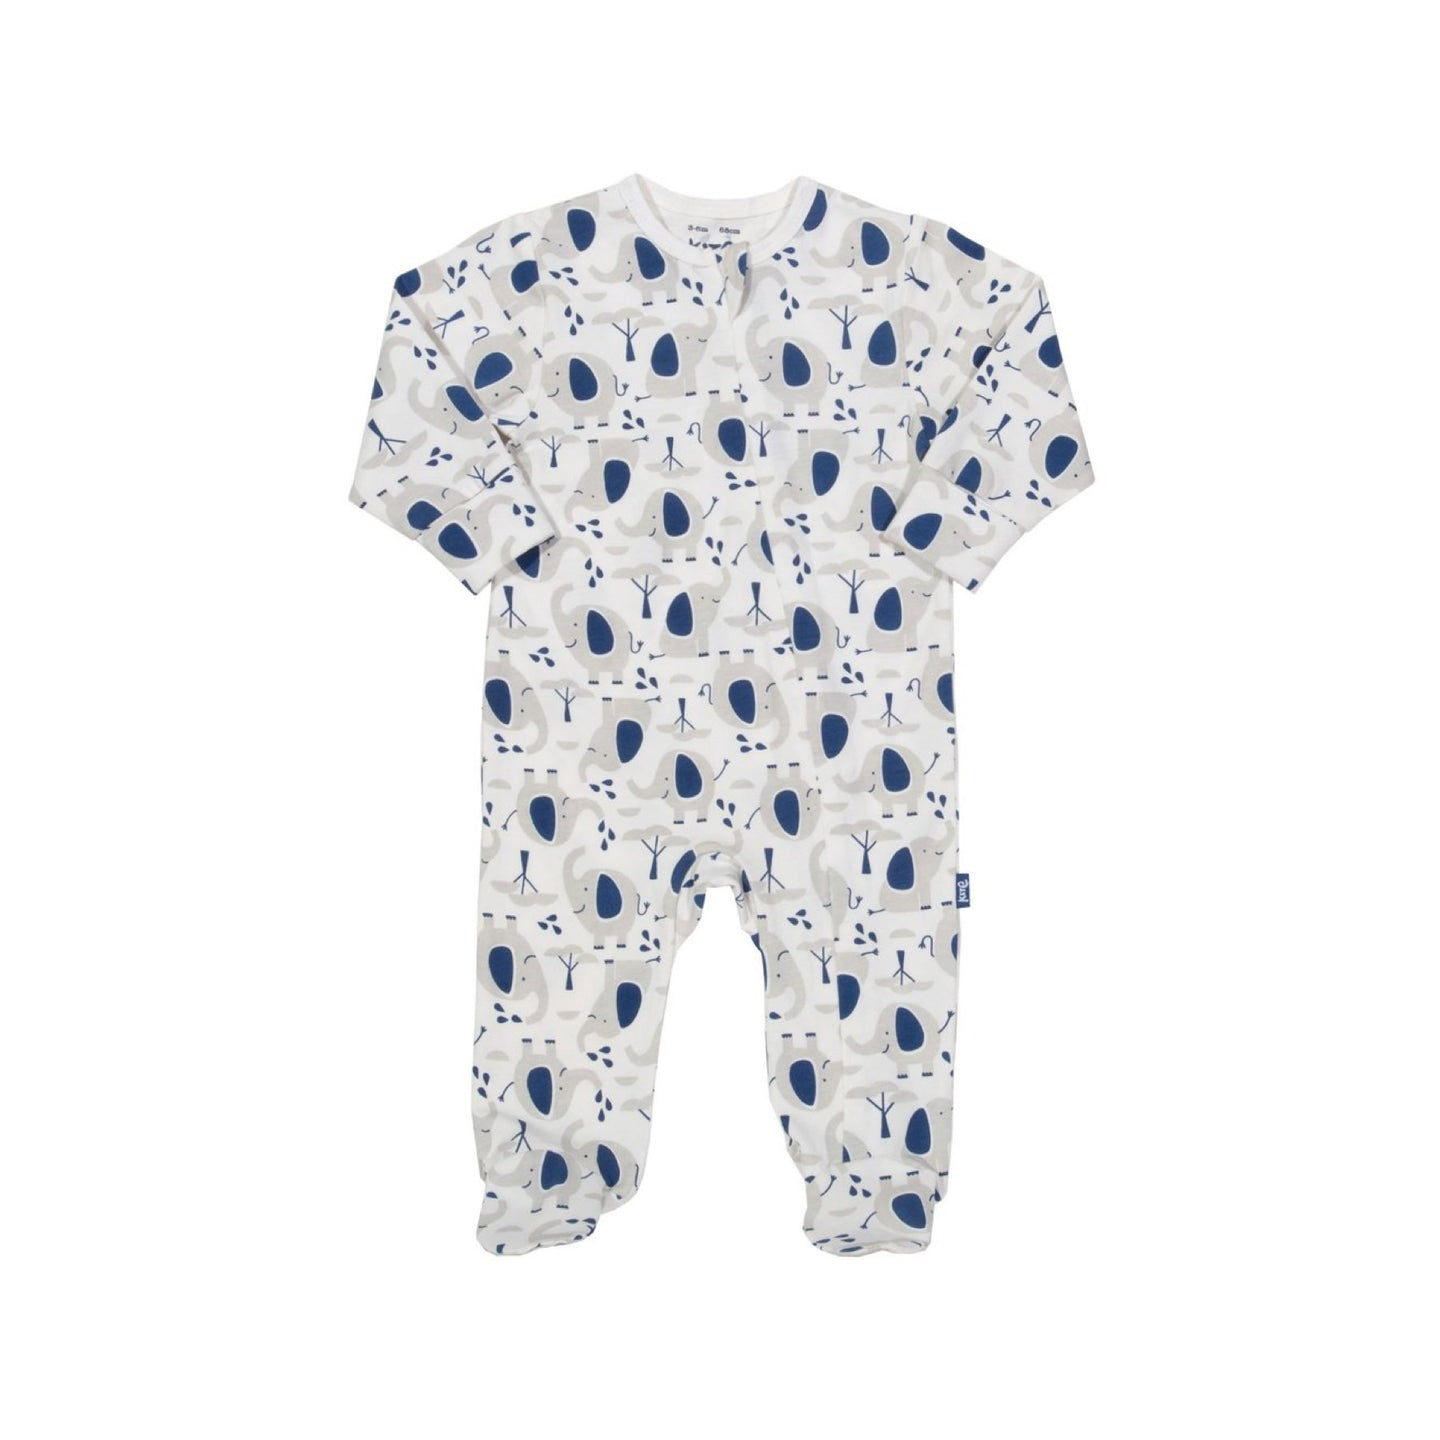 Organic cotton Ellie the Elephant Parade zippy sleepsuit by KITE